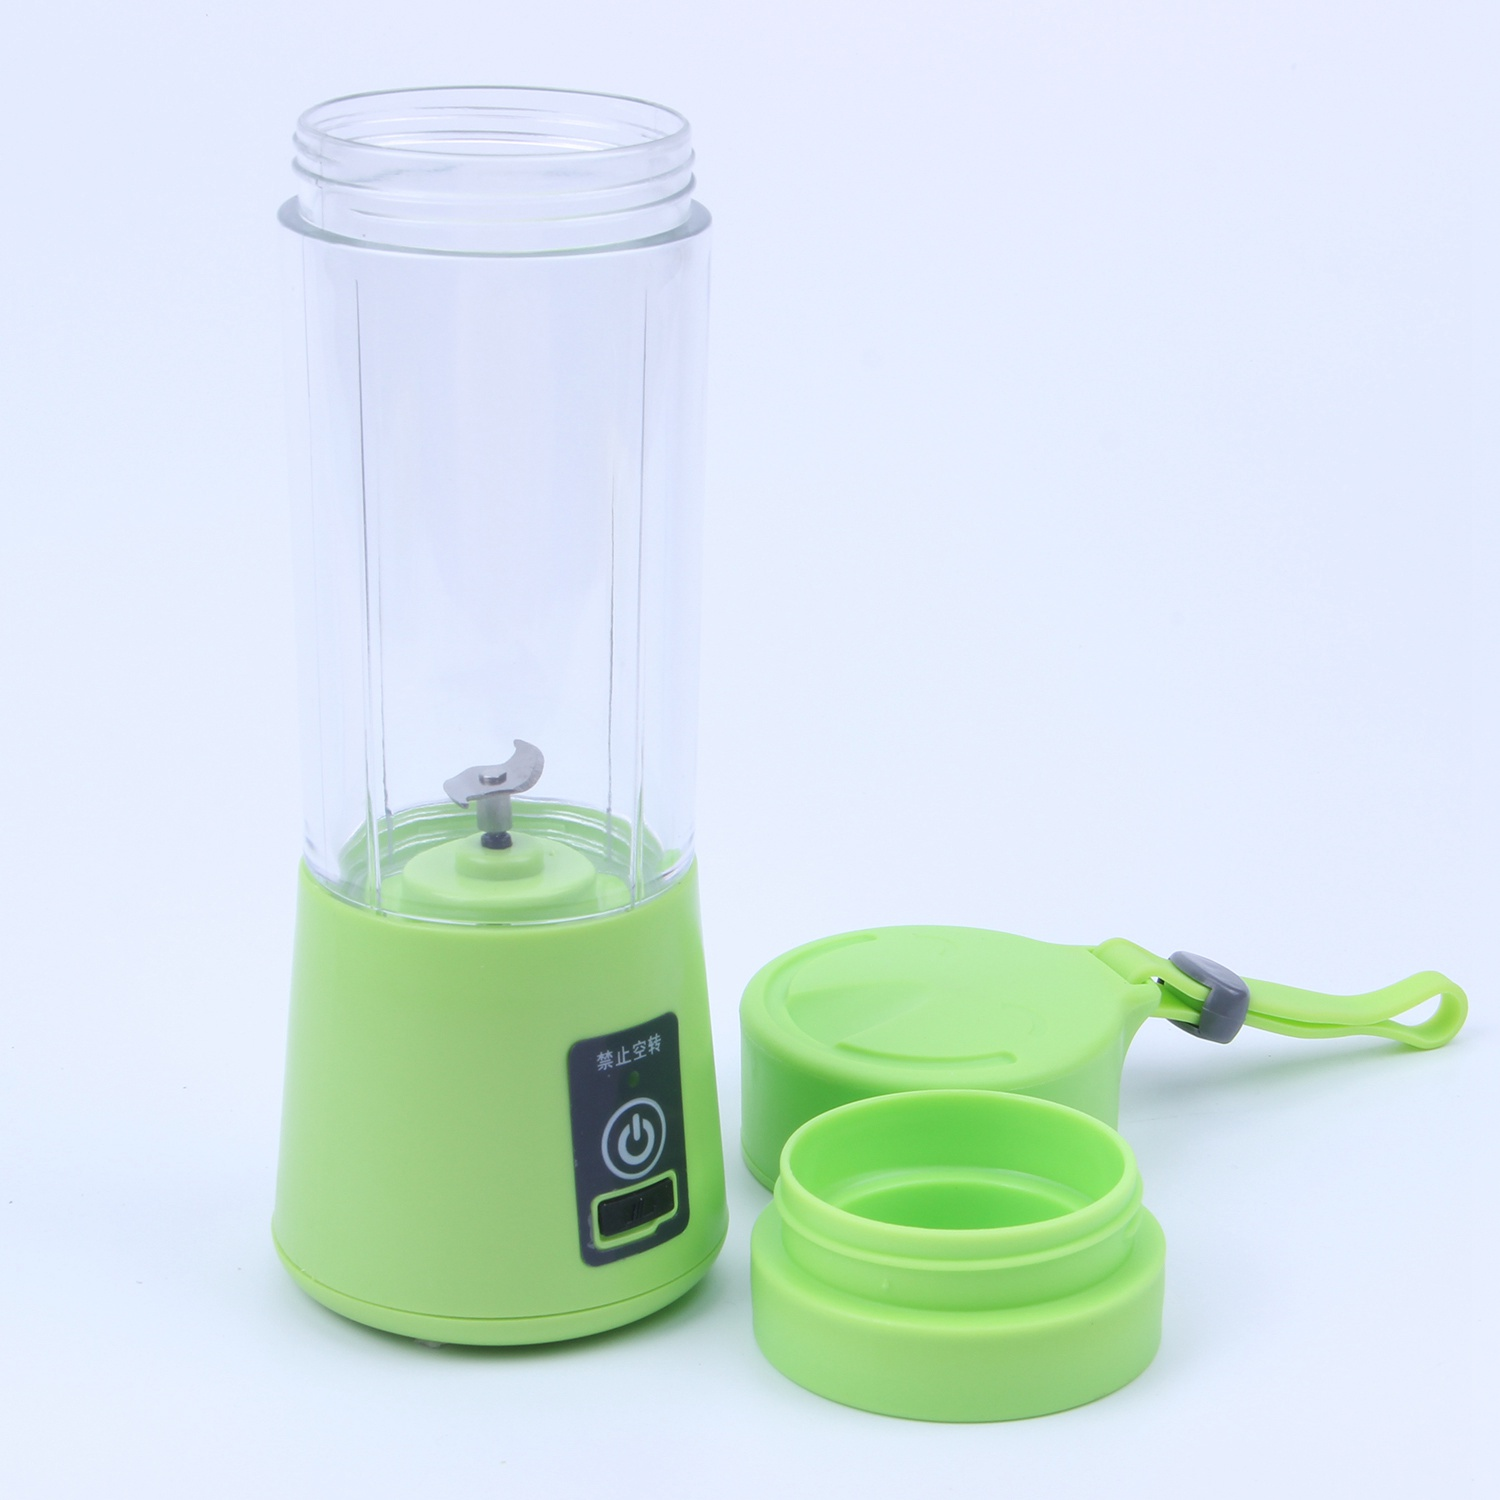 380ML Blender USB Charging Mode Portable Small Juicer Extractor Household Whisk Fruits Mixer Juice Machine Smoothie Maker 4